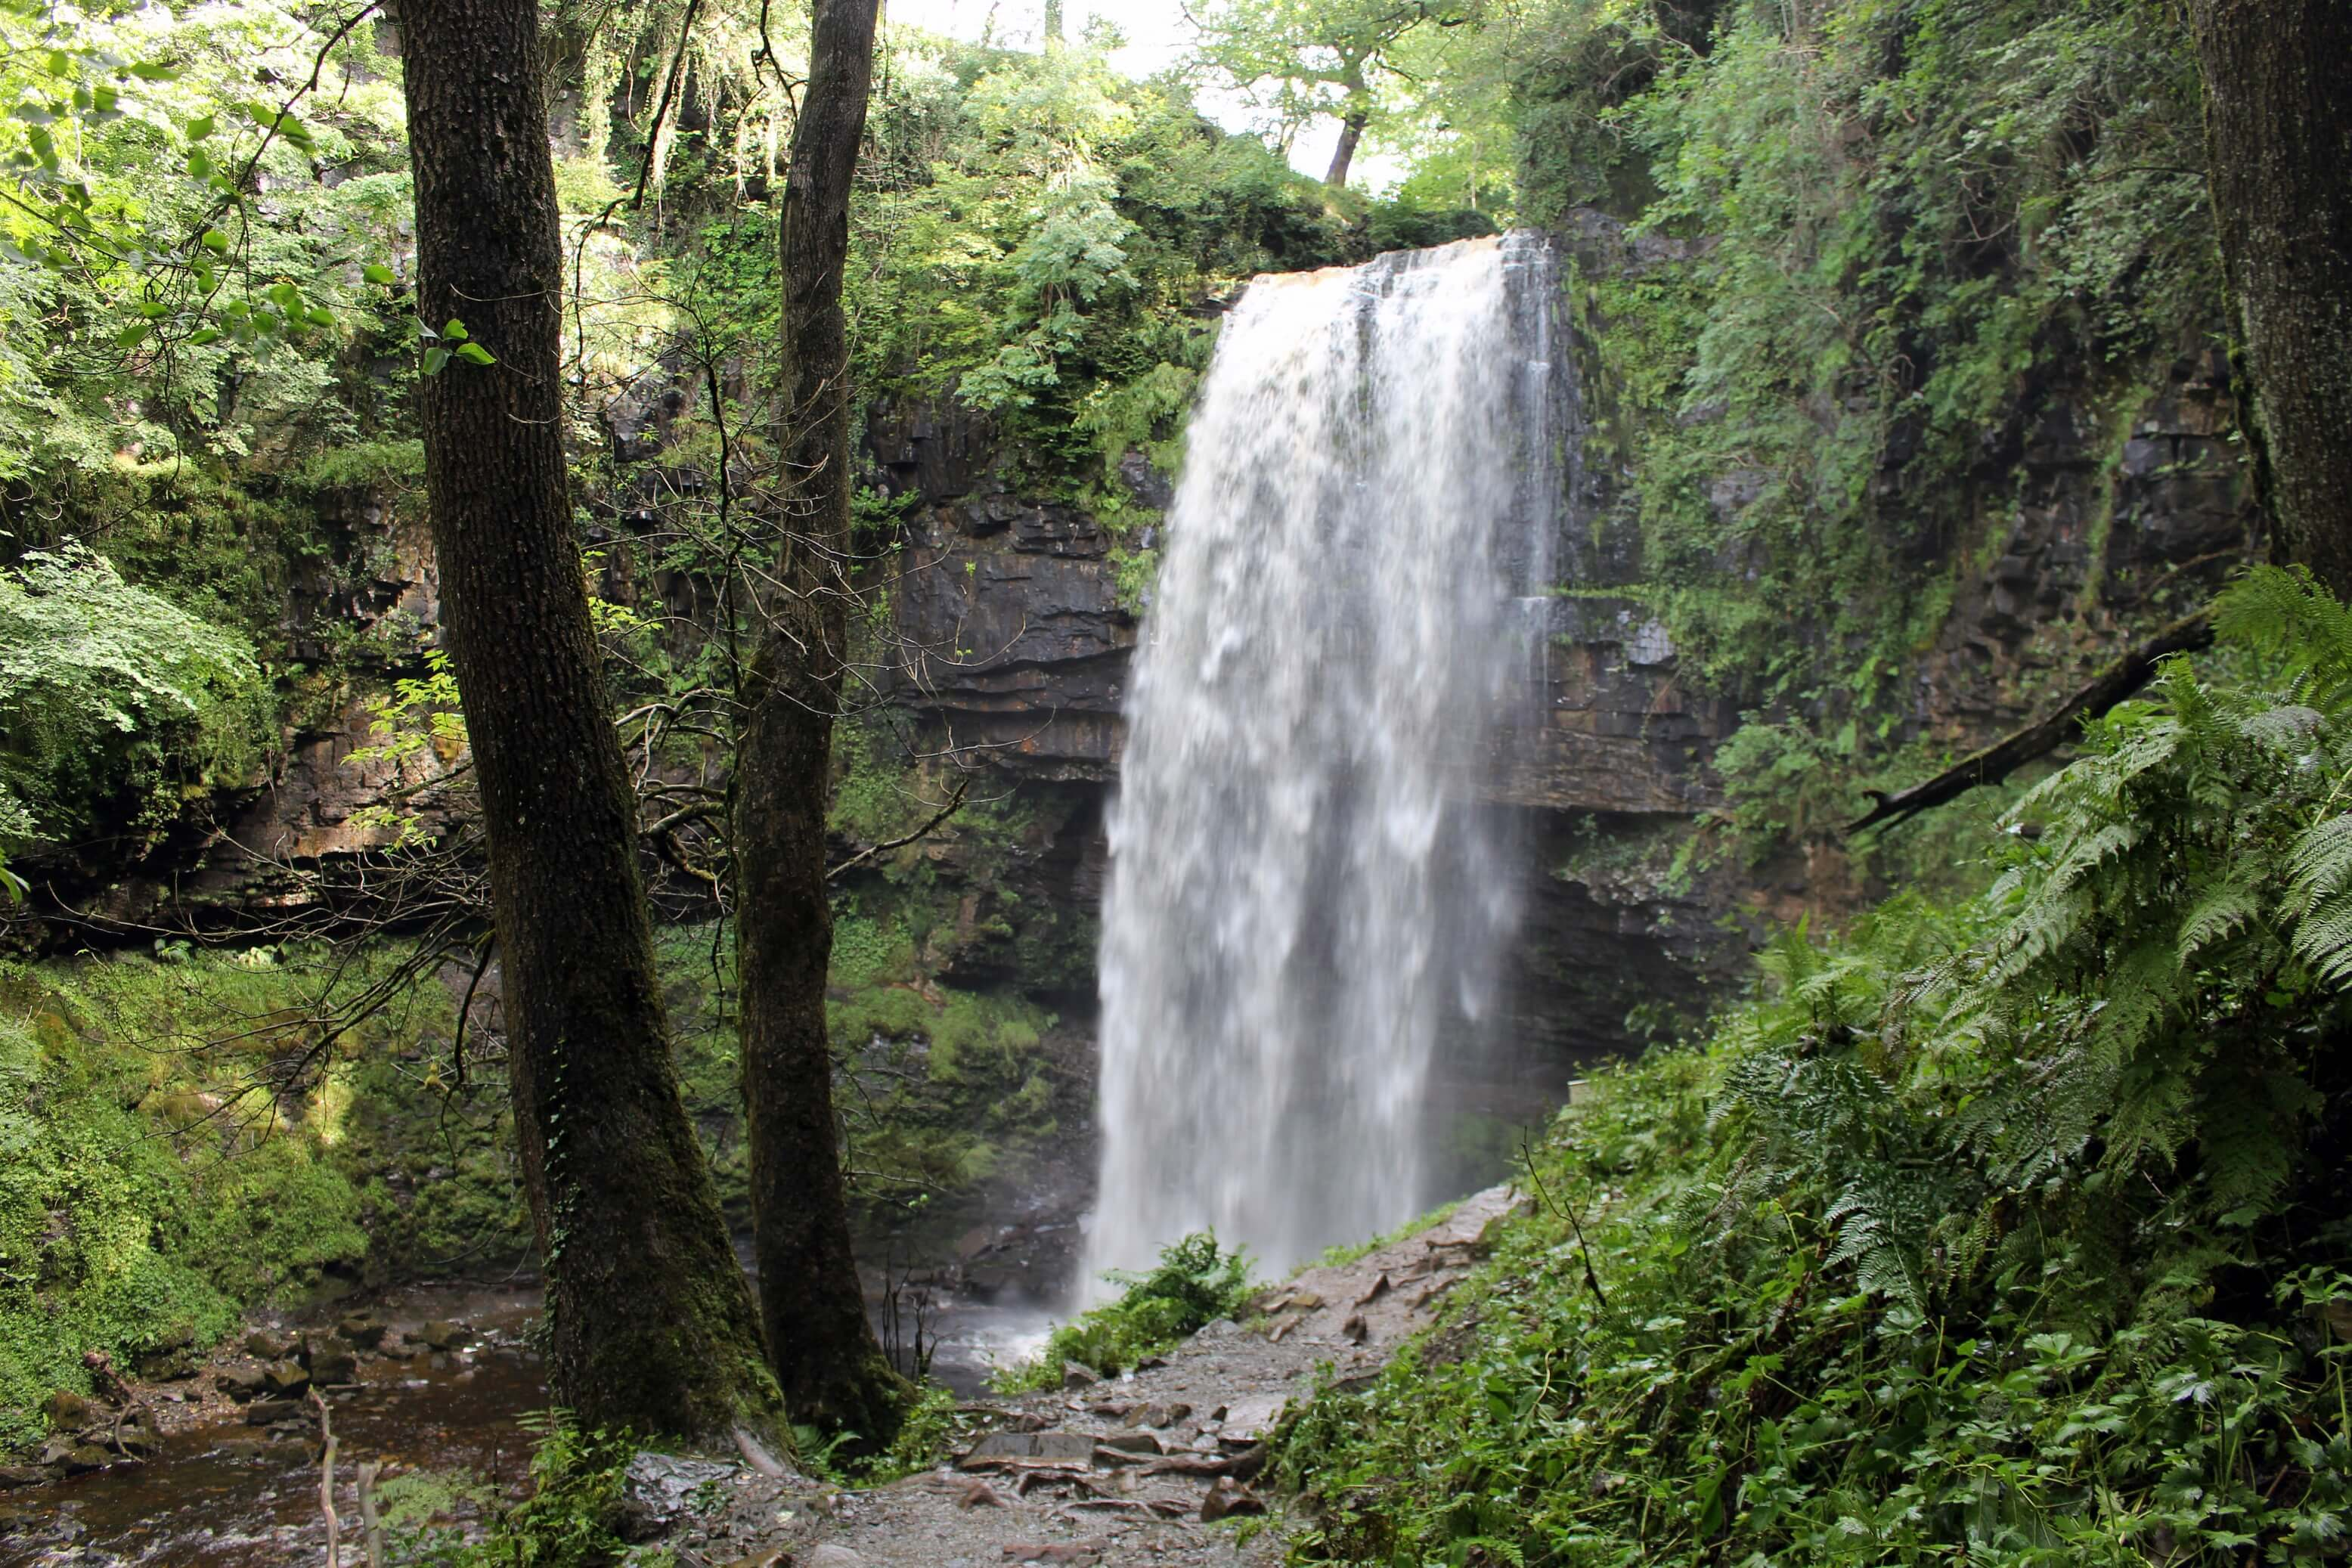 Waterfall Country Fforest Fawr & Black Mountain, Discover Brecon Beacons Waterfall Country - Amanda's Wanderlust